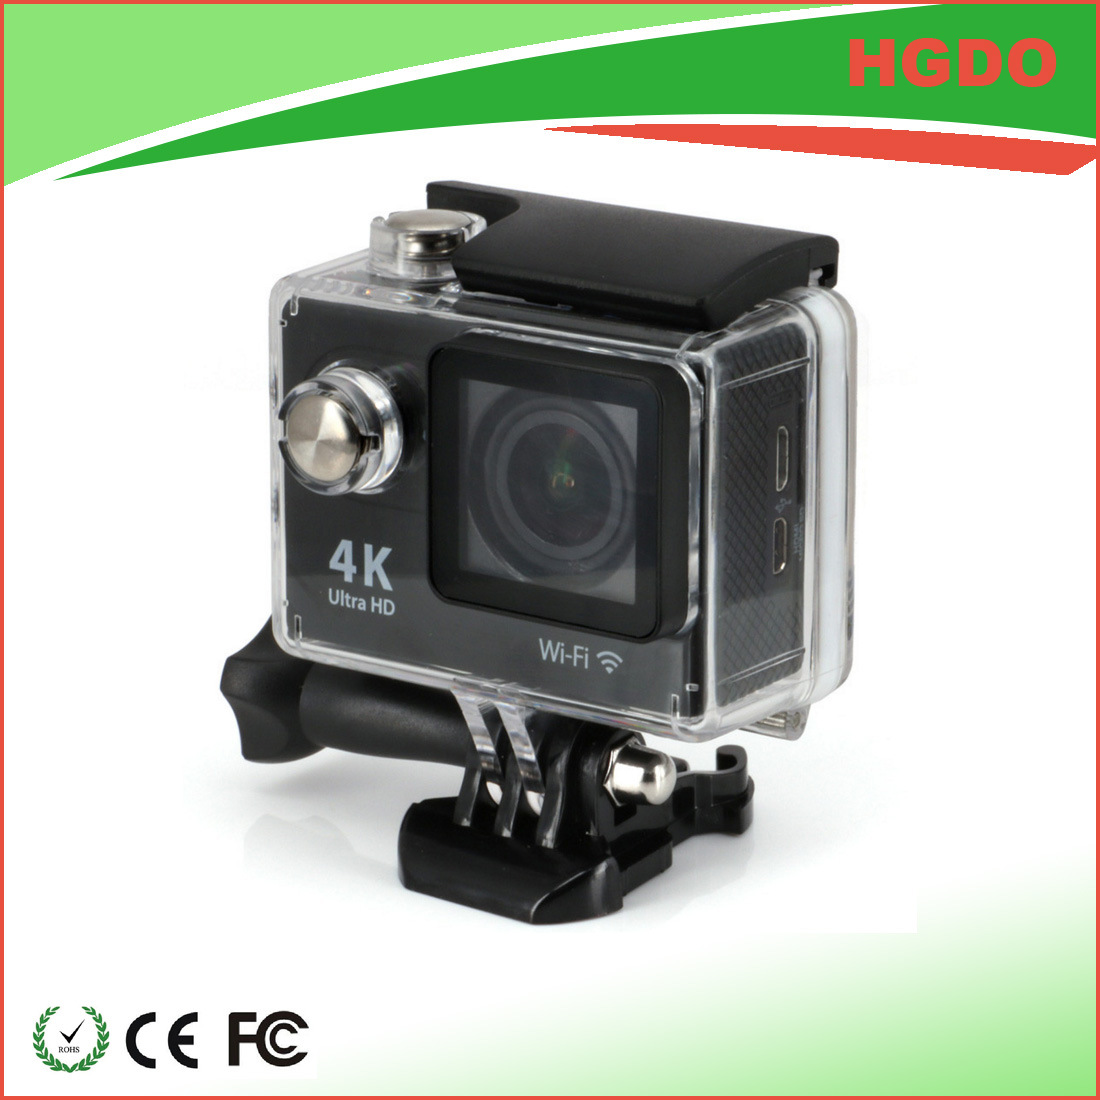 Mini 4k Deporte DV Digital Sport Camera with Waterproof Case